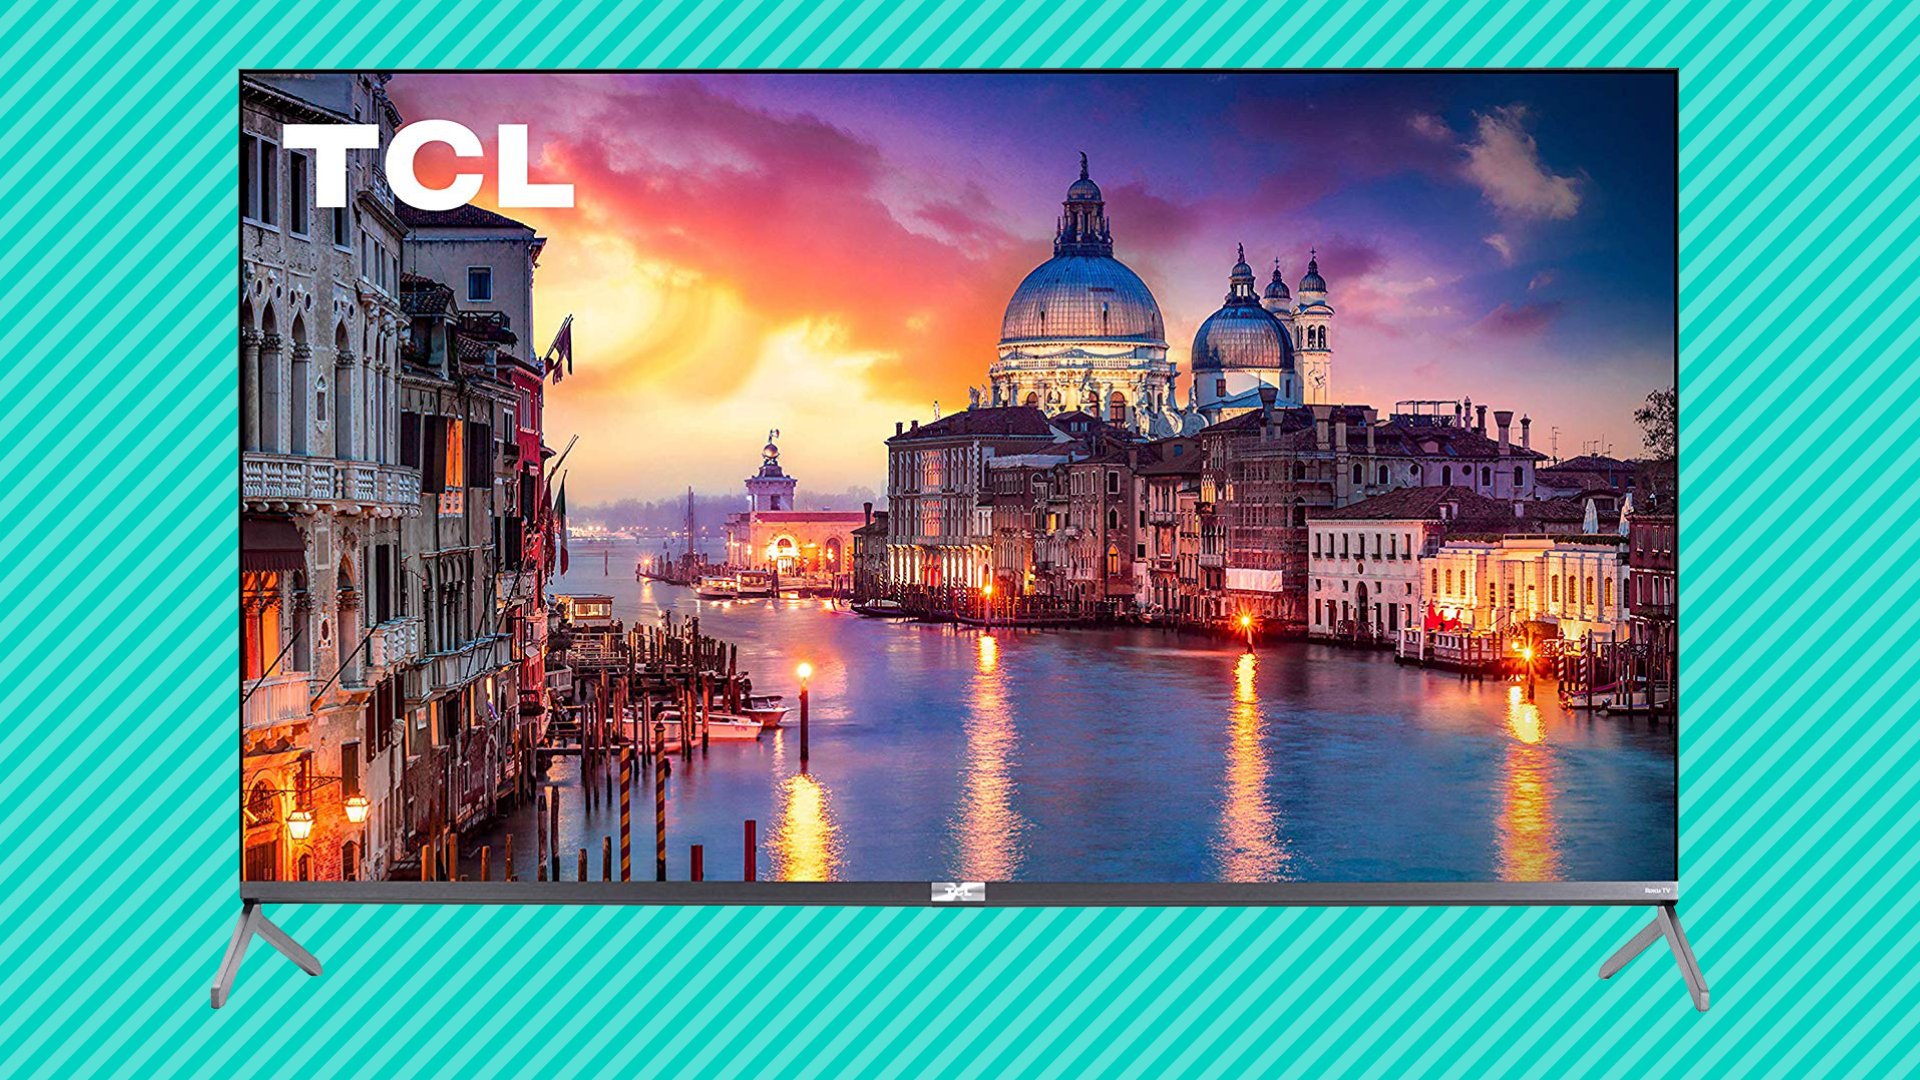 Amazon just slashed $400 off this TCL 65-inch 4K TV — and shoppers say it's 'the best TV you can buy right now'